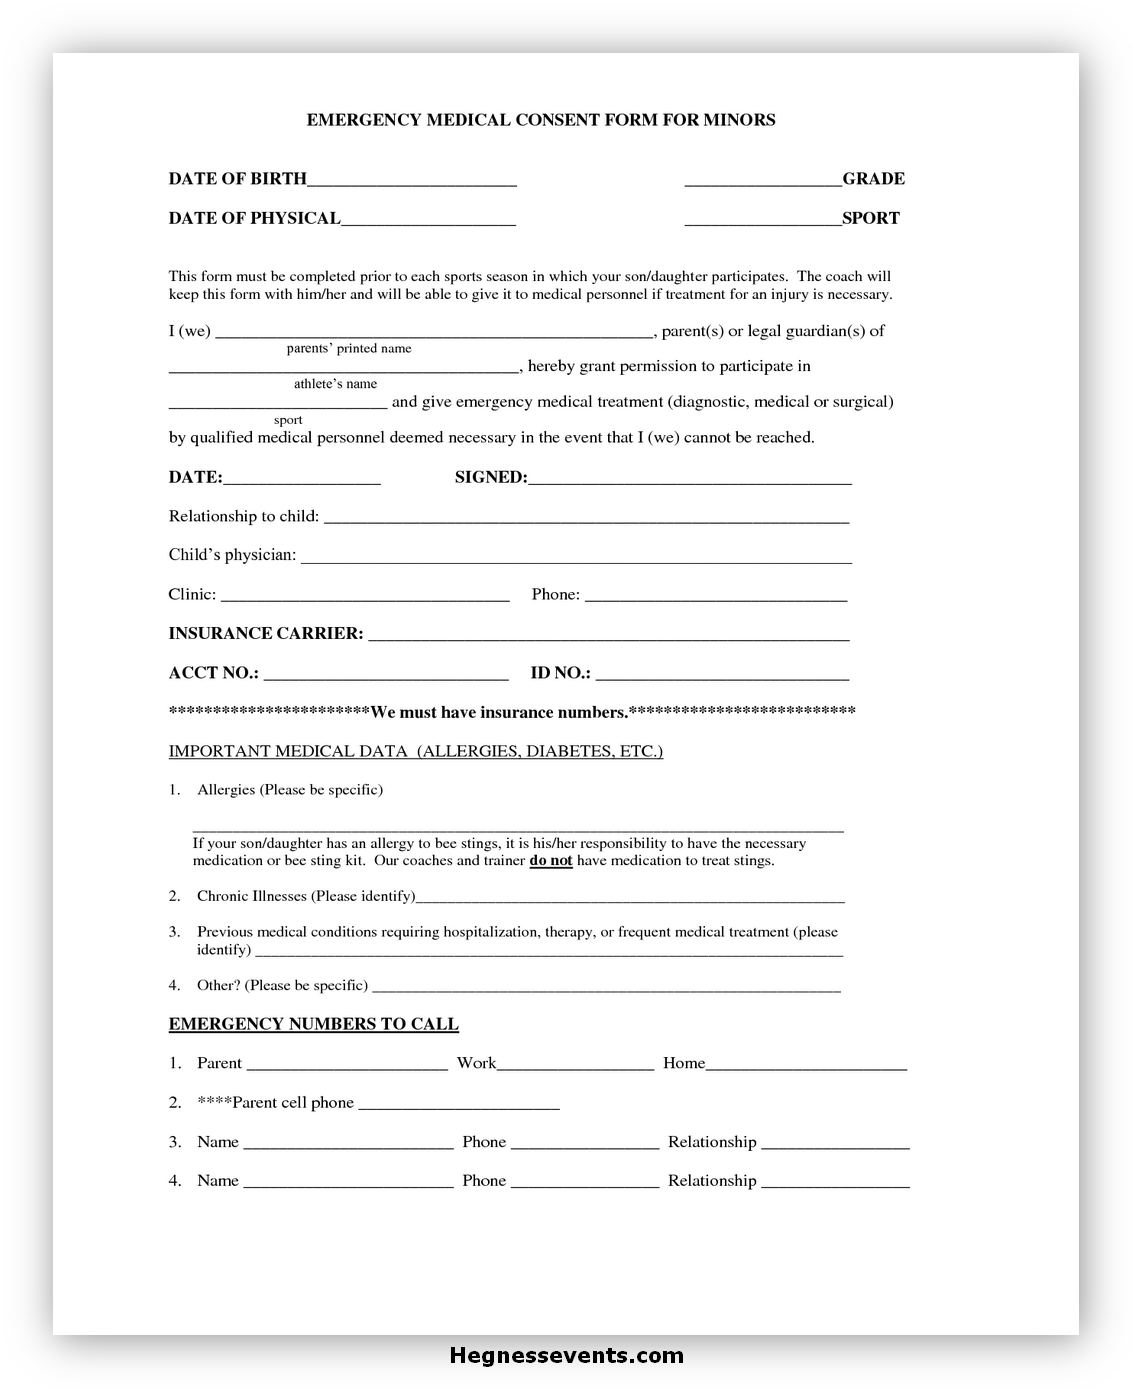 Medical Consent Form for A Minor 03